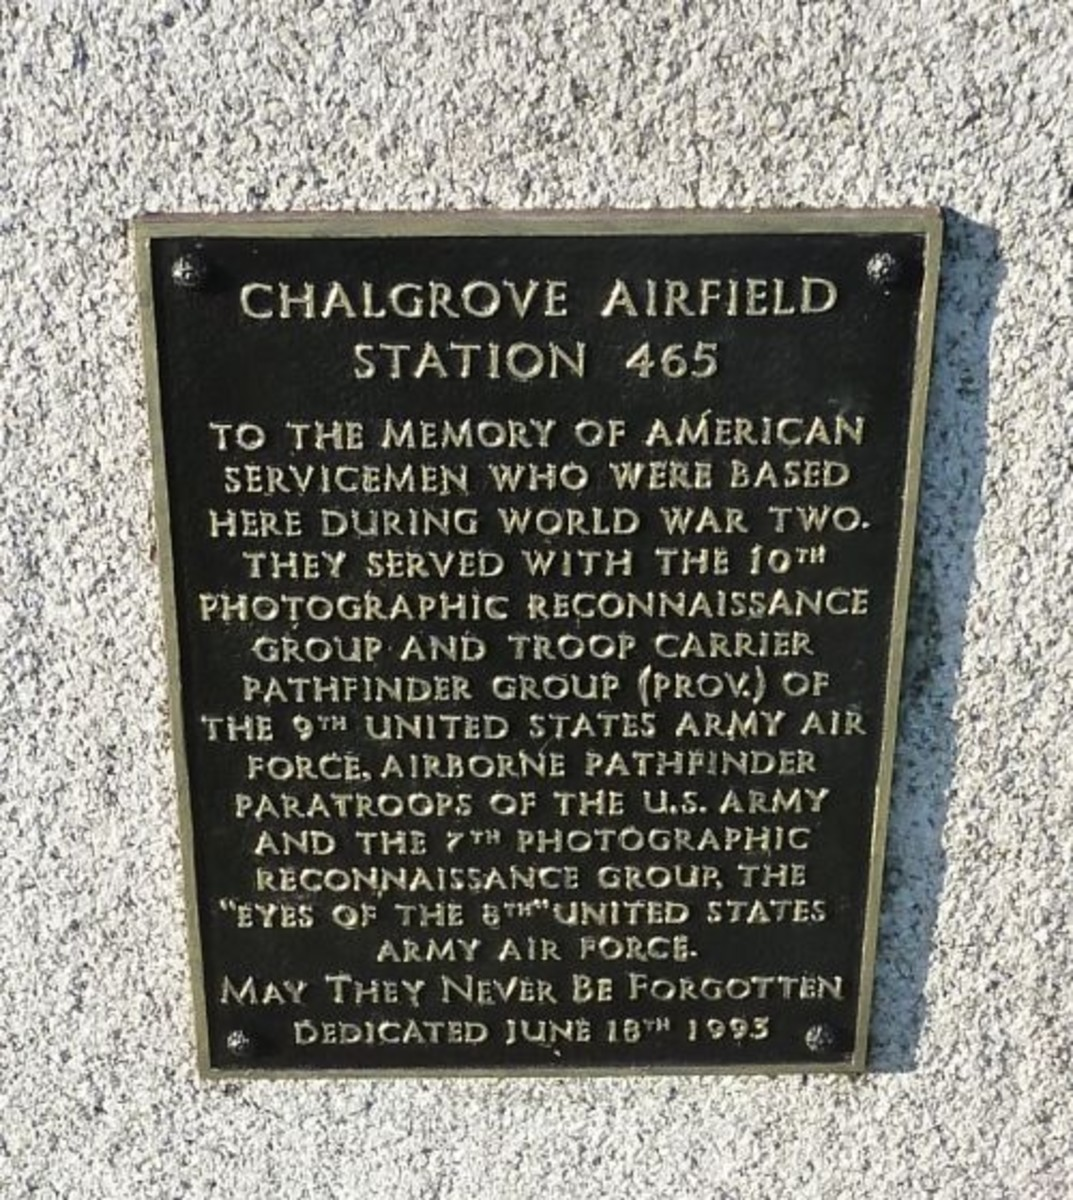 Chalgrove Field Station 465 Memorial